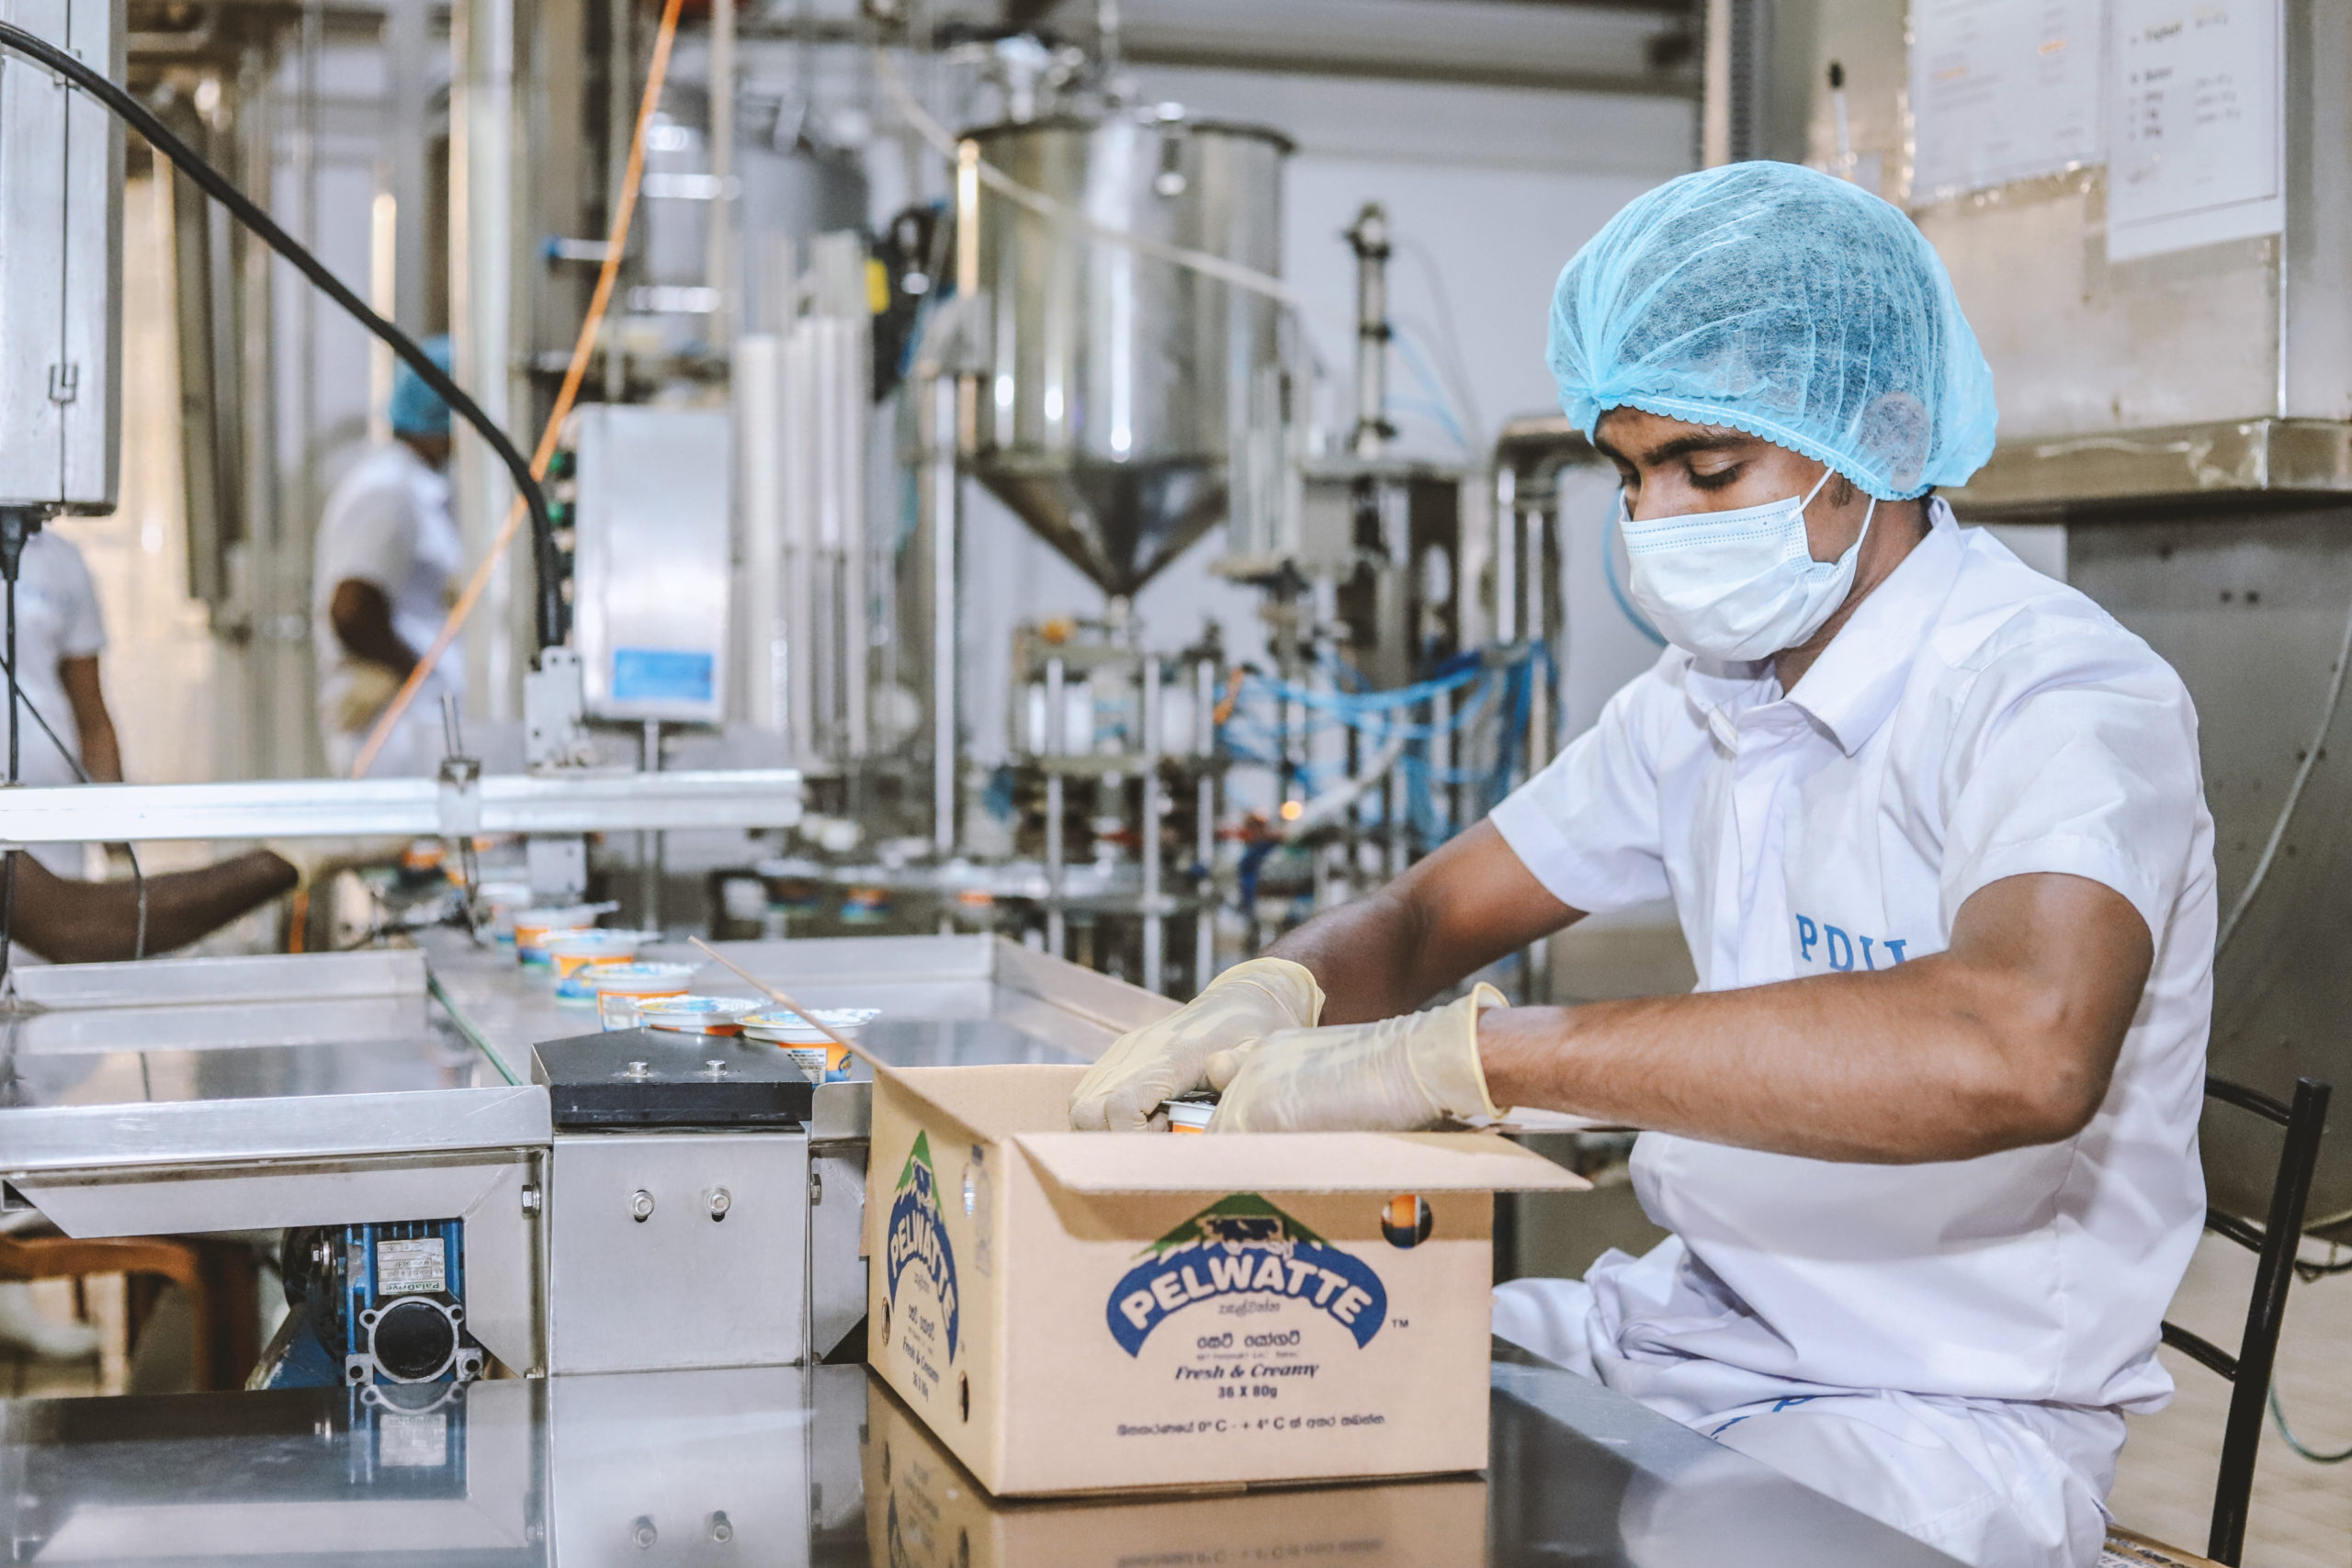 Pelwatte to explore continued local dairy self-sufficiency Post COVID-19